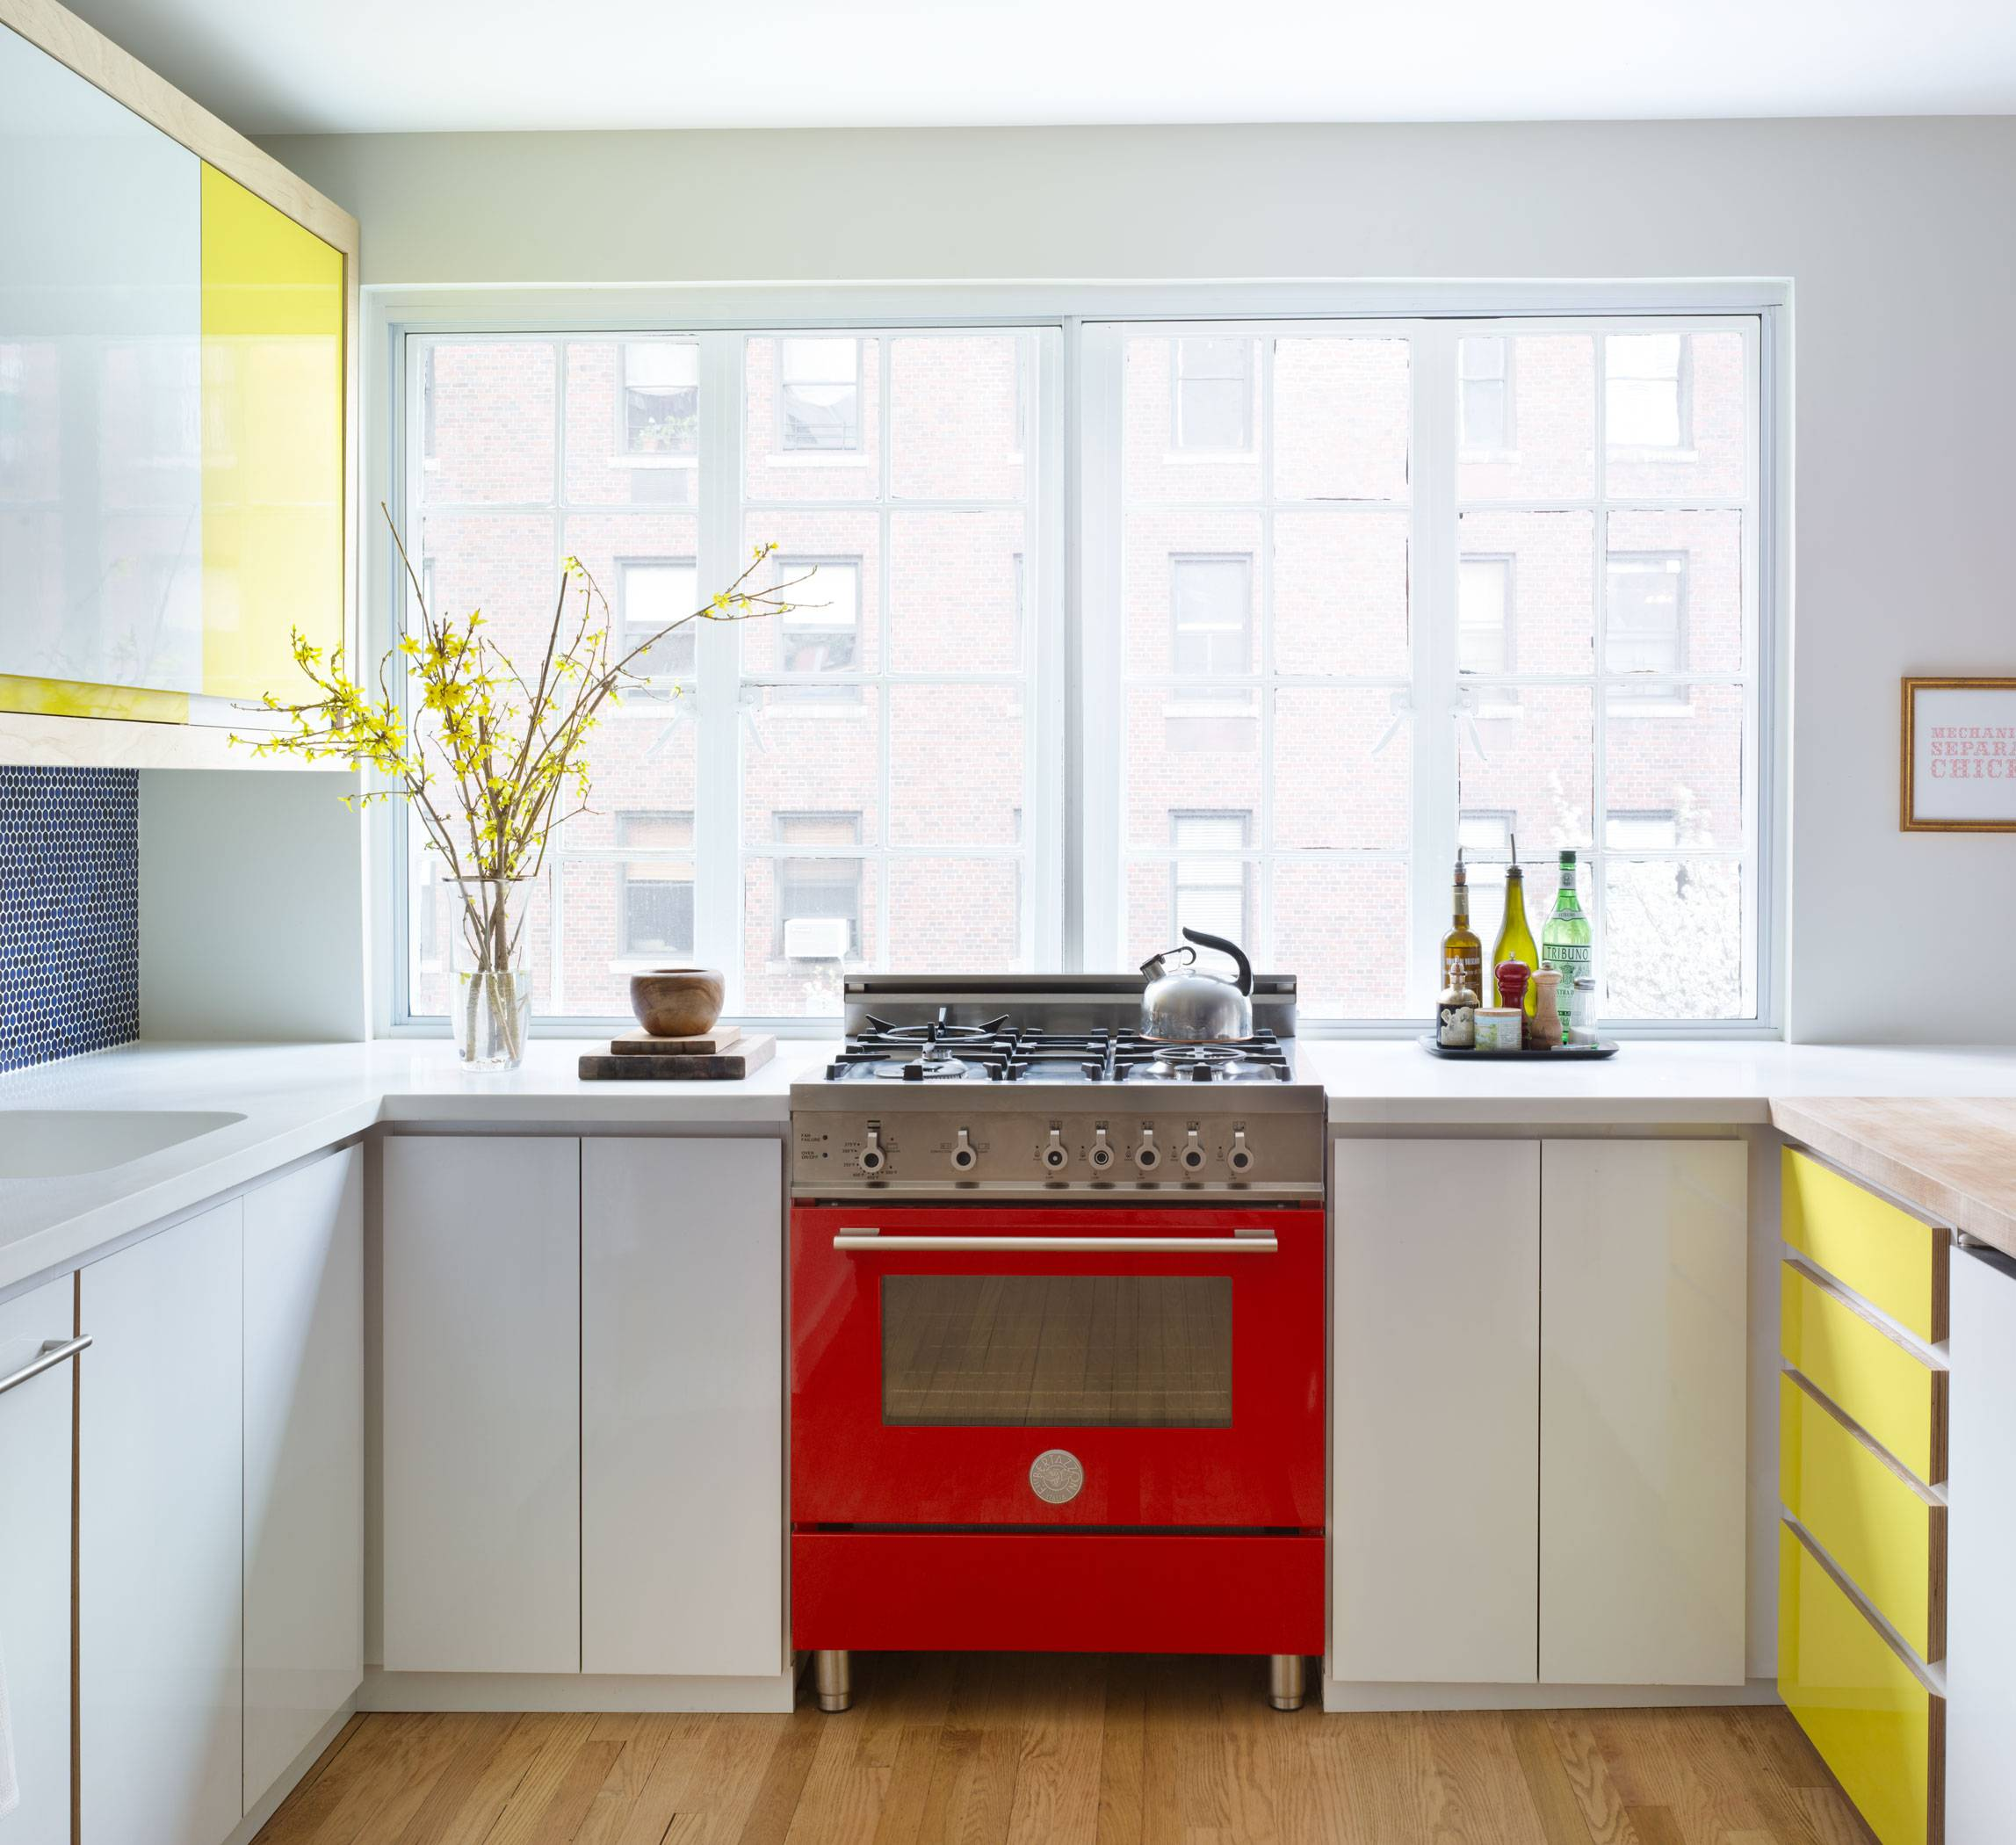 7 Tips for an uptodate kitchen • Becode